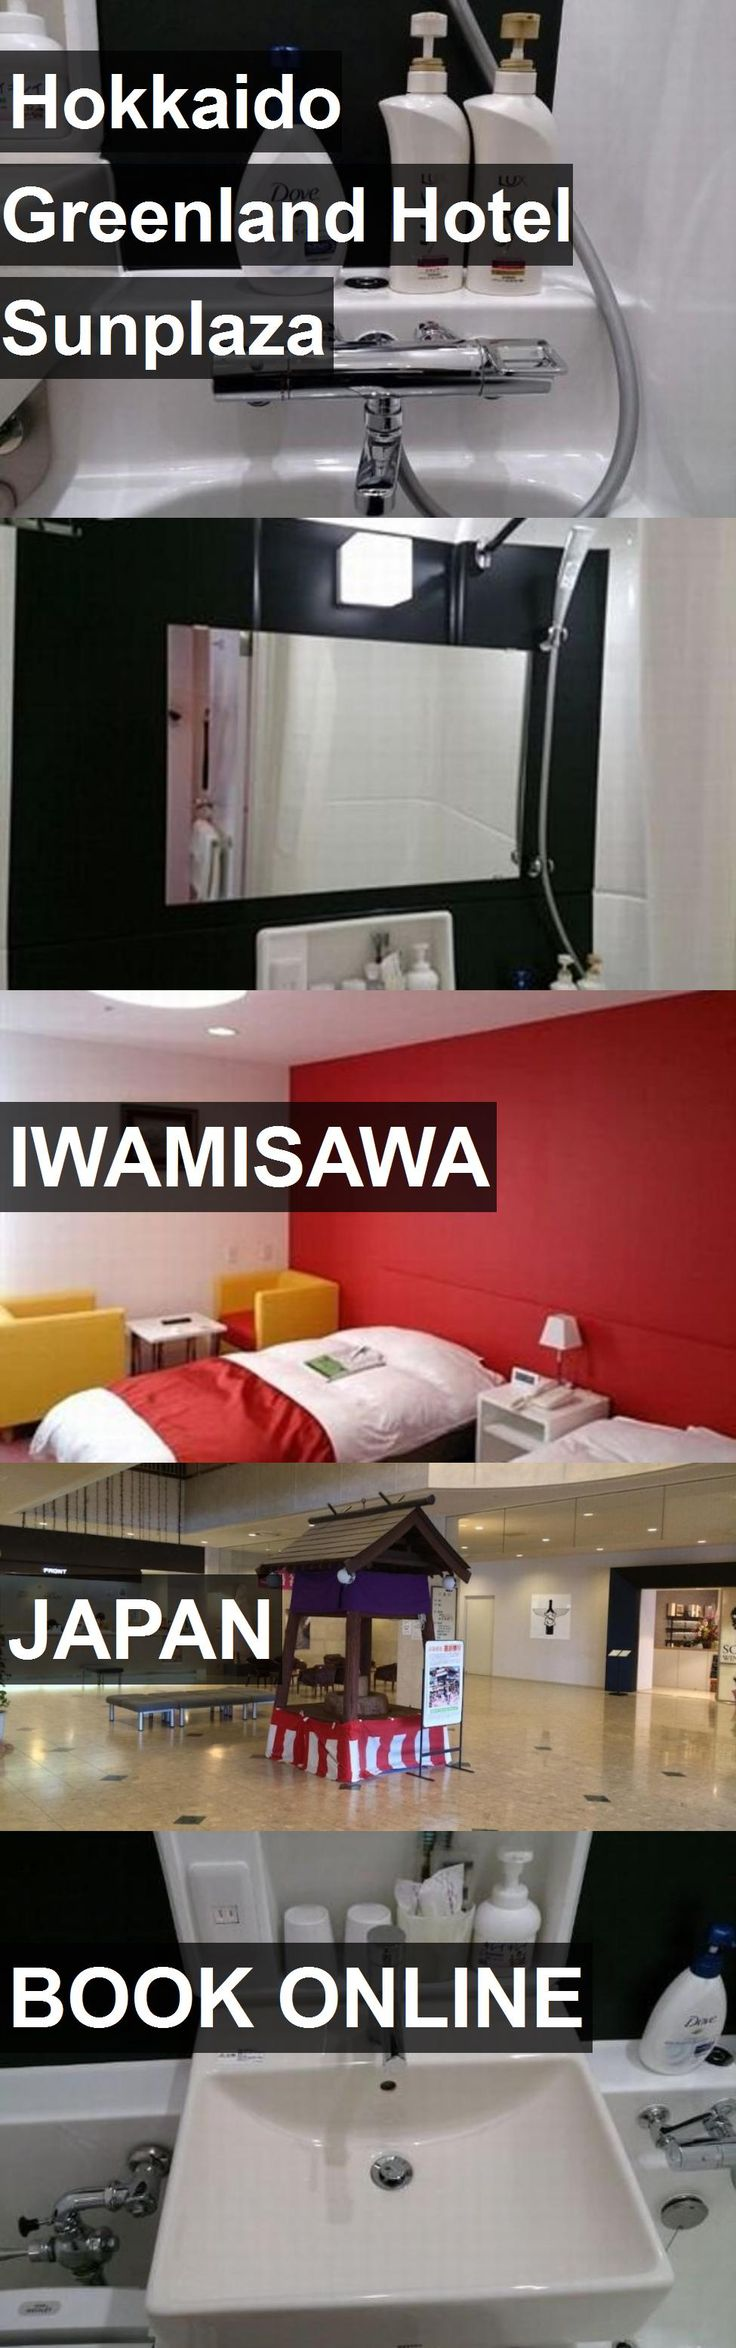 Hokkaido Greenland Hotel Sunplaza in Iwamisawa, Japan. For more information, photos, reviews and best prices please follow the link. #Japan #Iwamisawa #travel #vacation #hotel